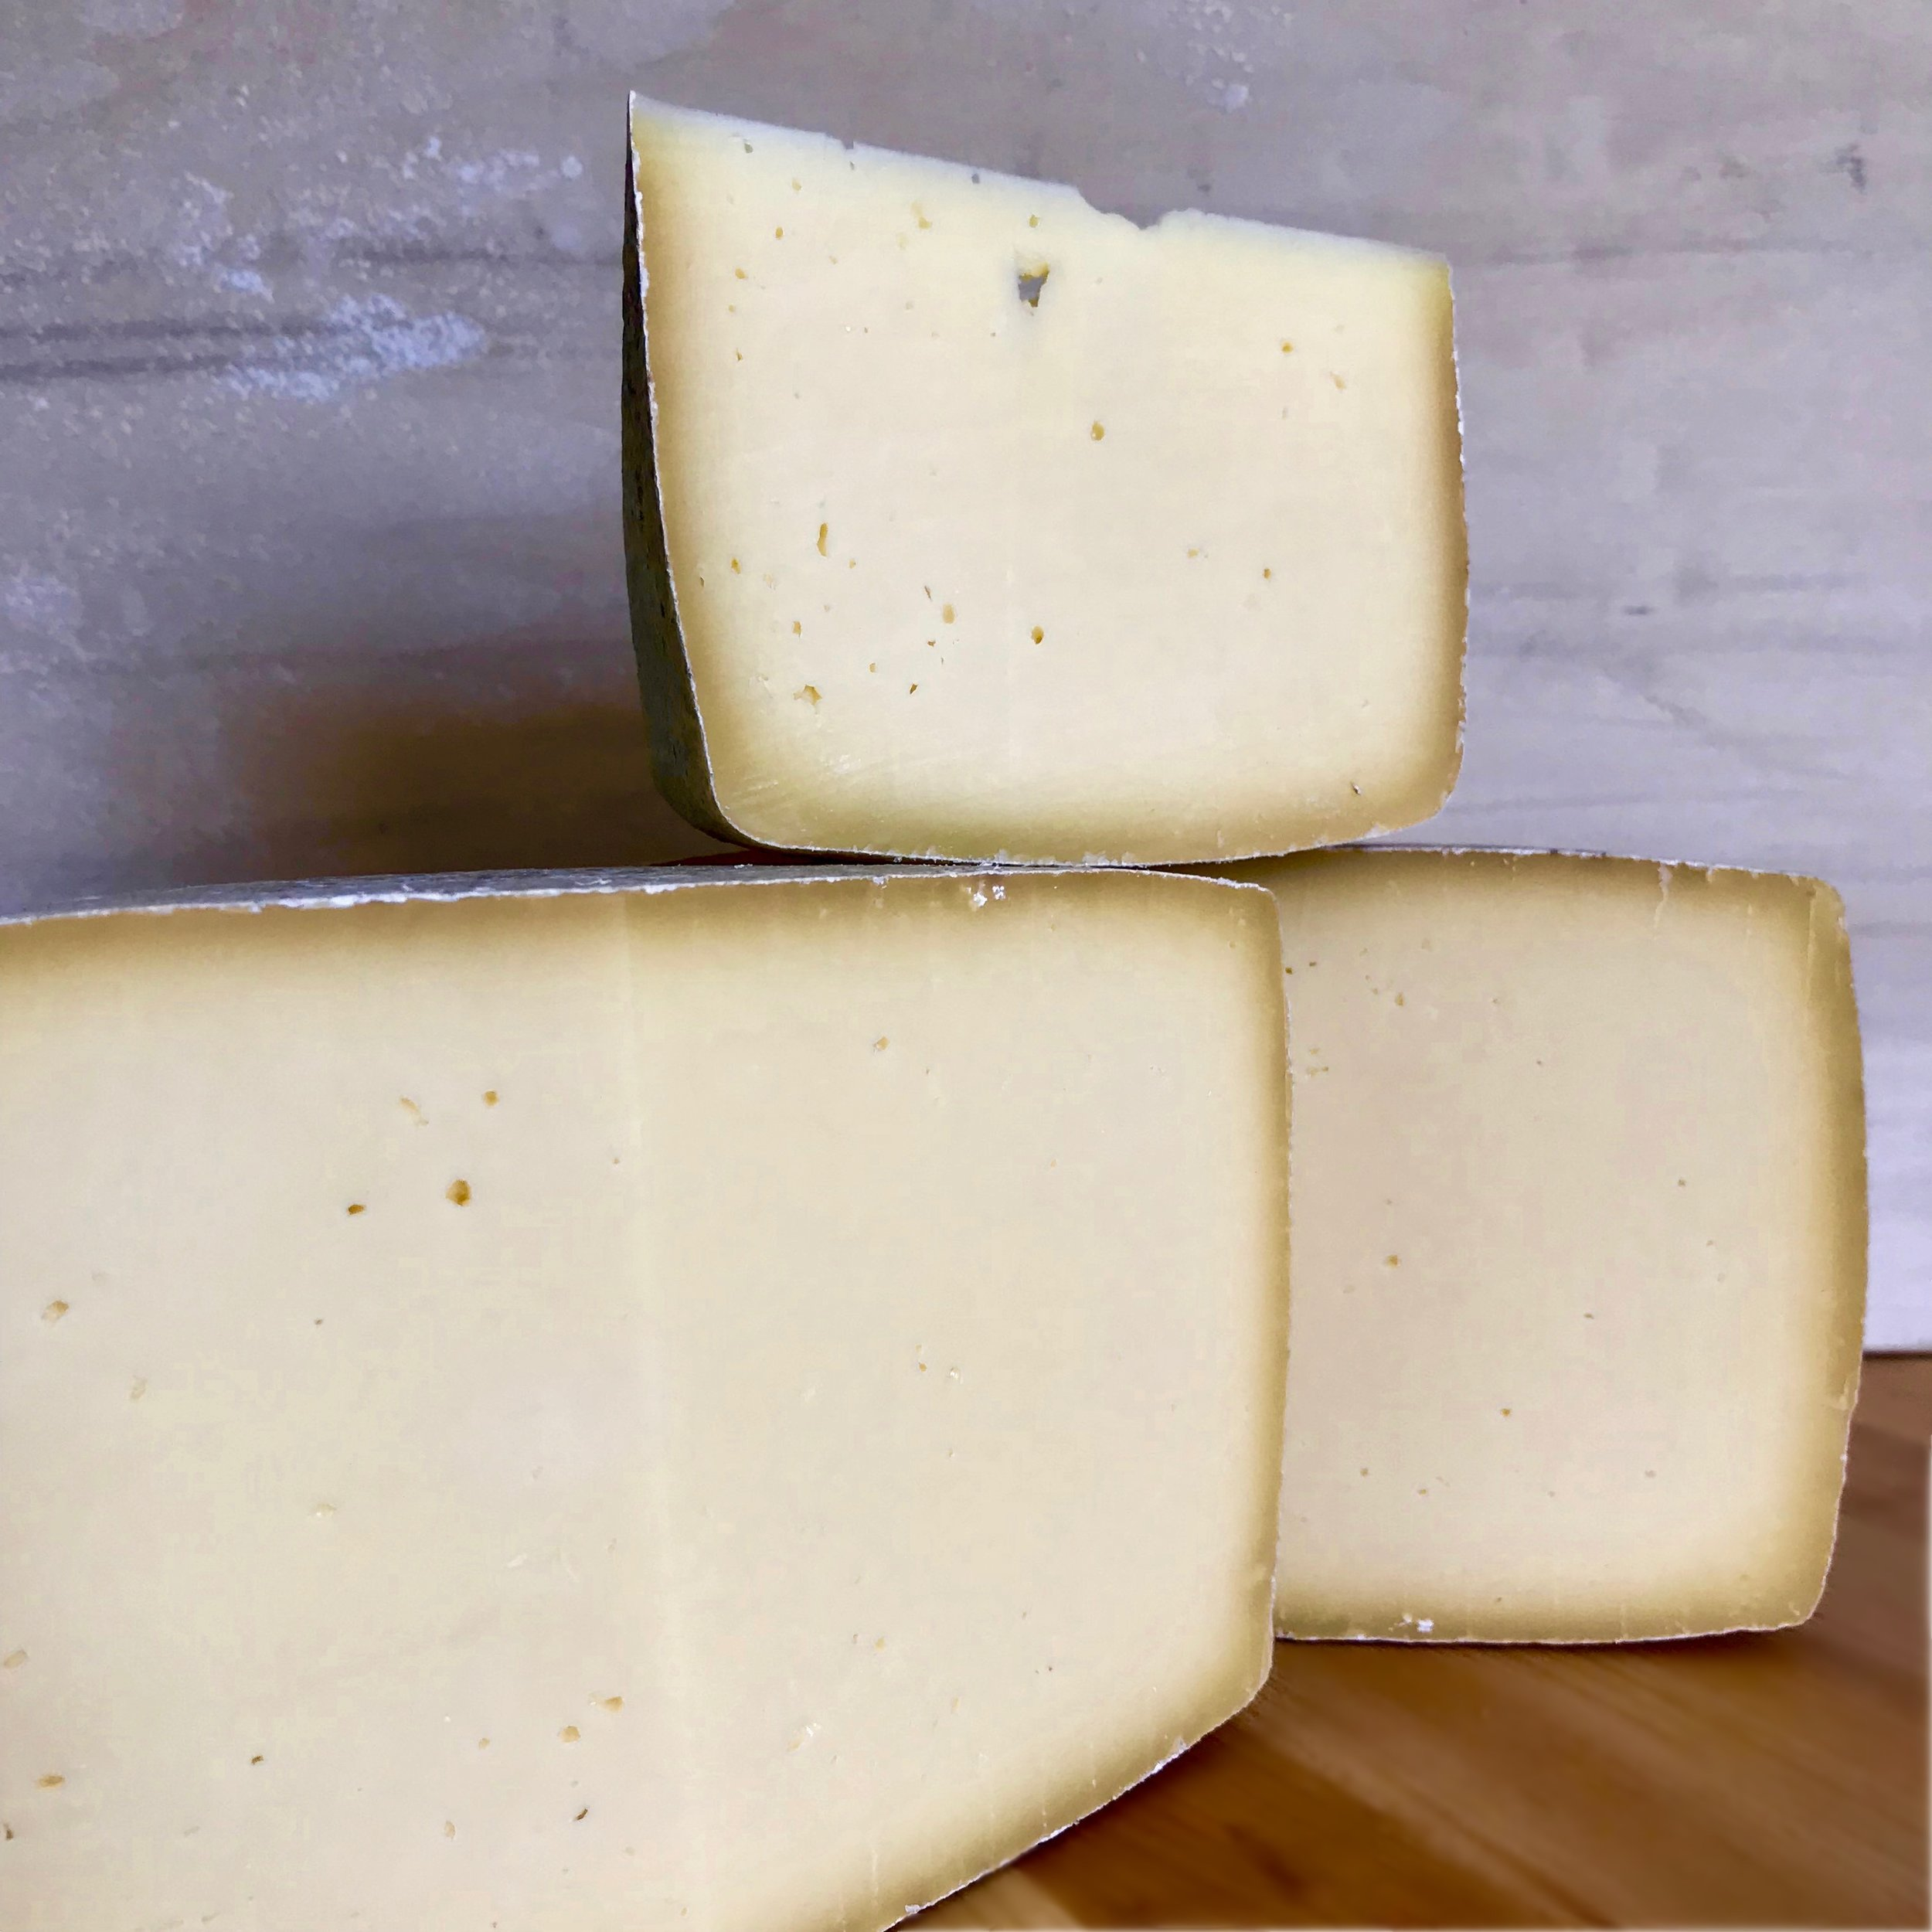 Wild Thing - Wild Thing is a pure expression of our backyard raw milk and microbes. We use both mesophilic and thermophilic cultures made from the microbes that live on udders and in the grasses of our pastures. It takes 7 gallons of mixed goat and cow milk to make one 8 pound square stone that ages well for 4 to 6 months. Her rind is natural and her paste is semi-hard, with a creamy texture. Her flavors are milky, straightforward, clean, and pure, gaining complexity as she ages.Wild Thing is part of a cheesemaking revolution. Find out about the revolution here!